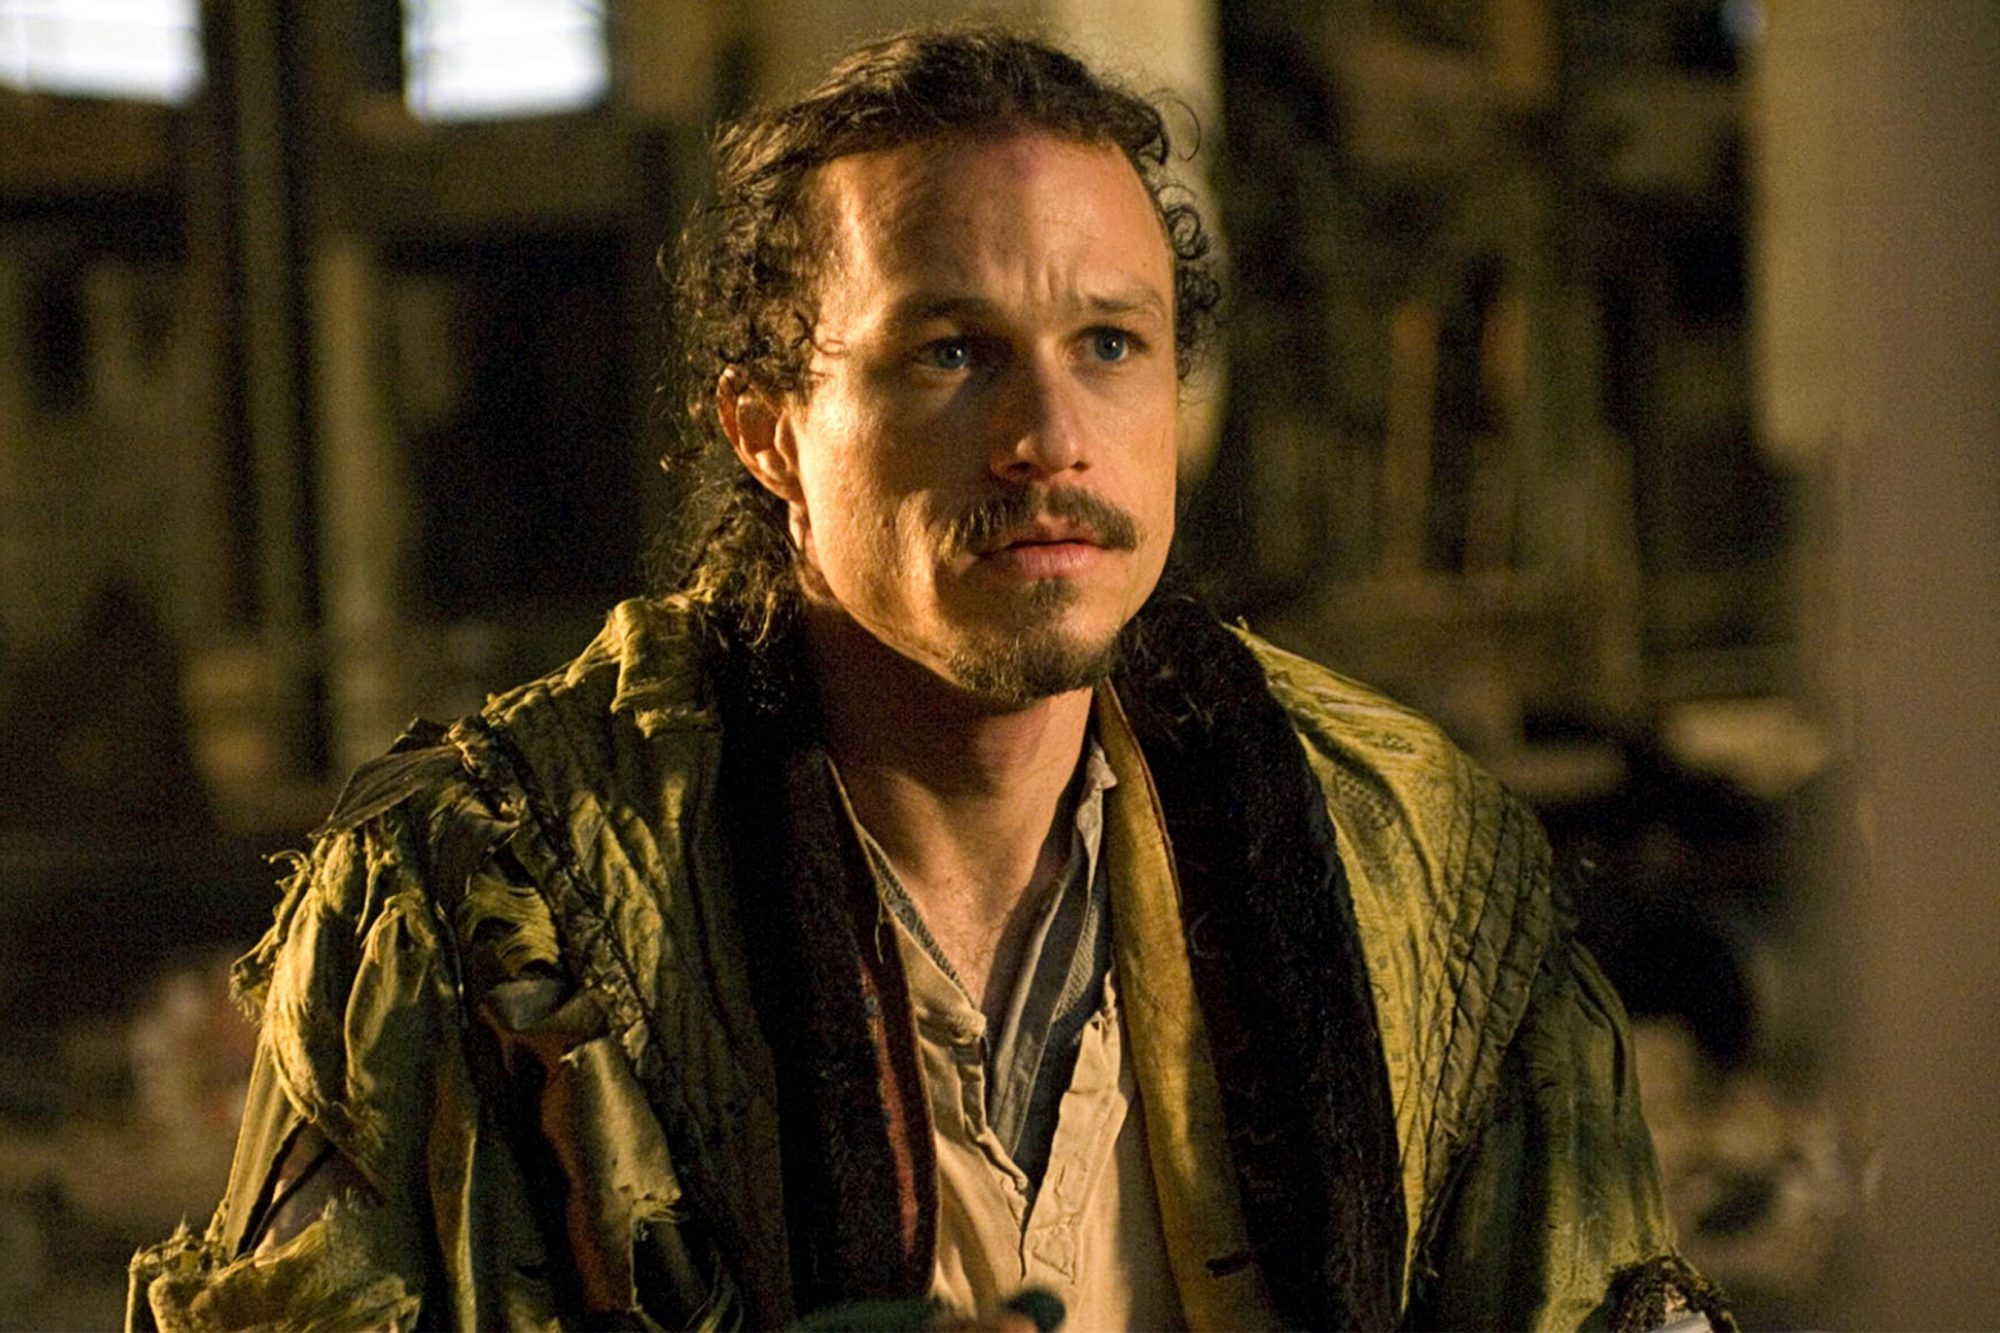 THE IMAGINARIUM OF DOCTOR PARNASSUS, Heath Ledger, 2009. ©Sony Pictures Classics/Courtesy Everett Collection